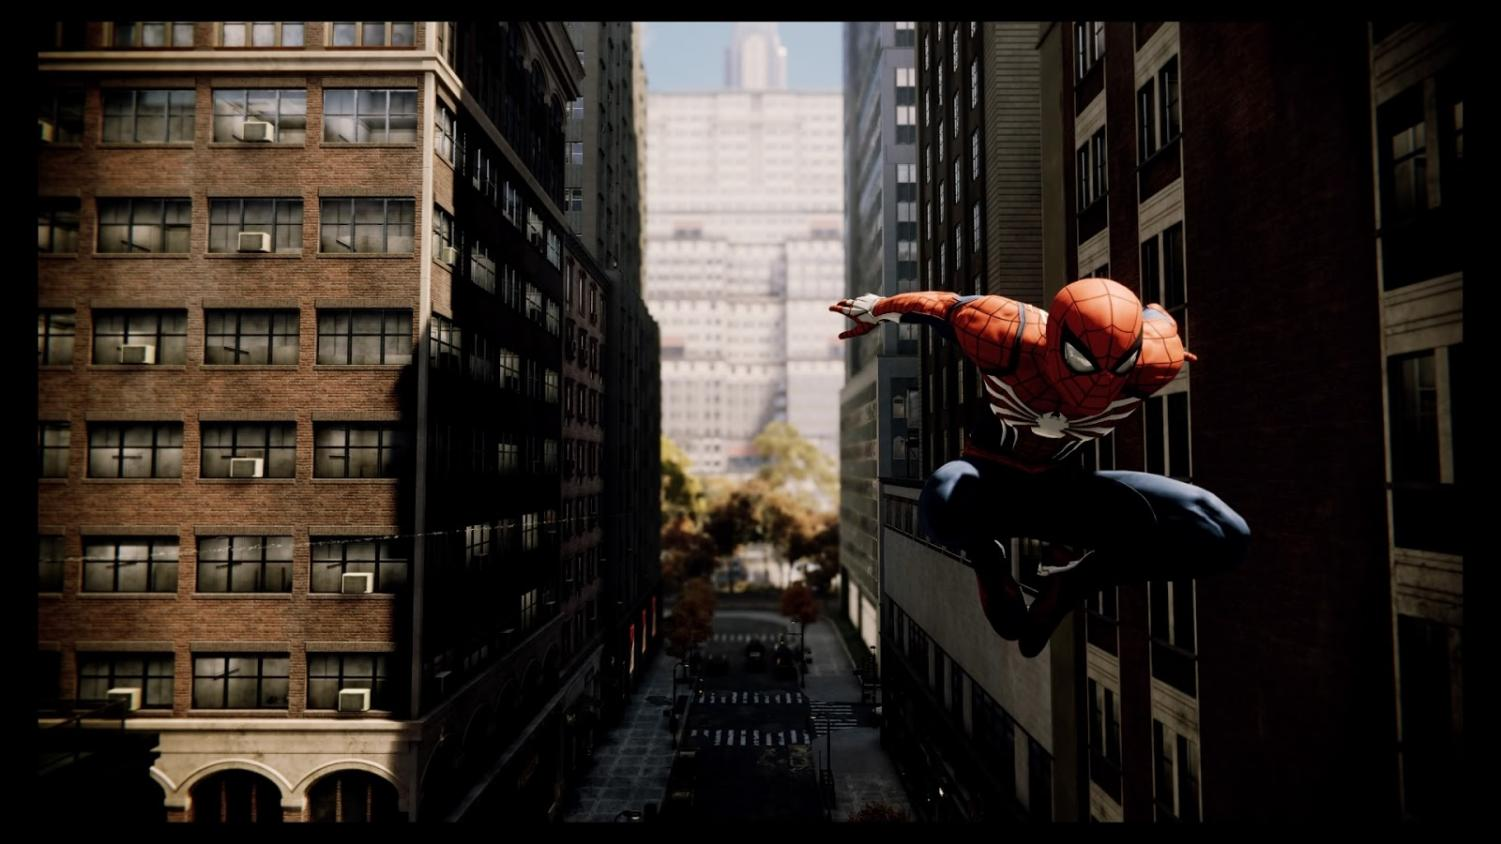 Spider-Man traversing the concrete jungle of New York City